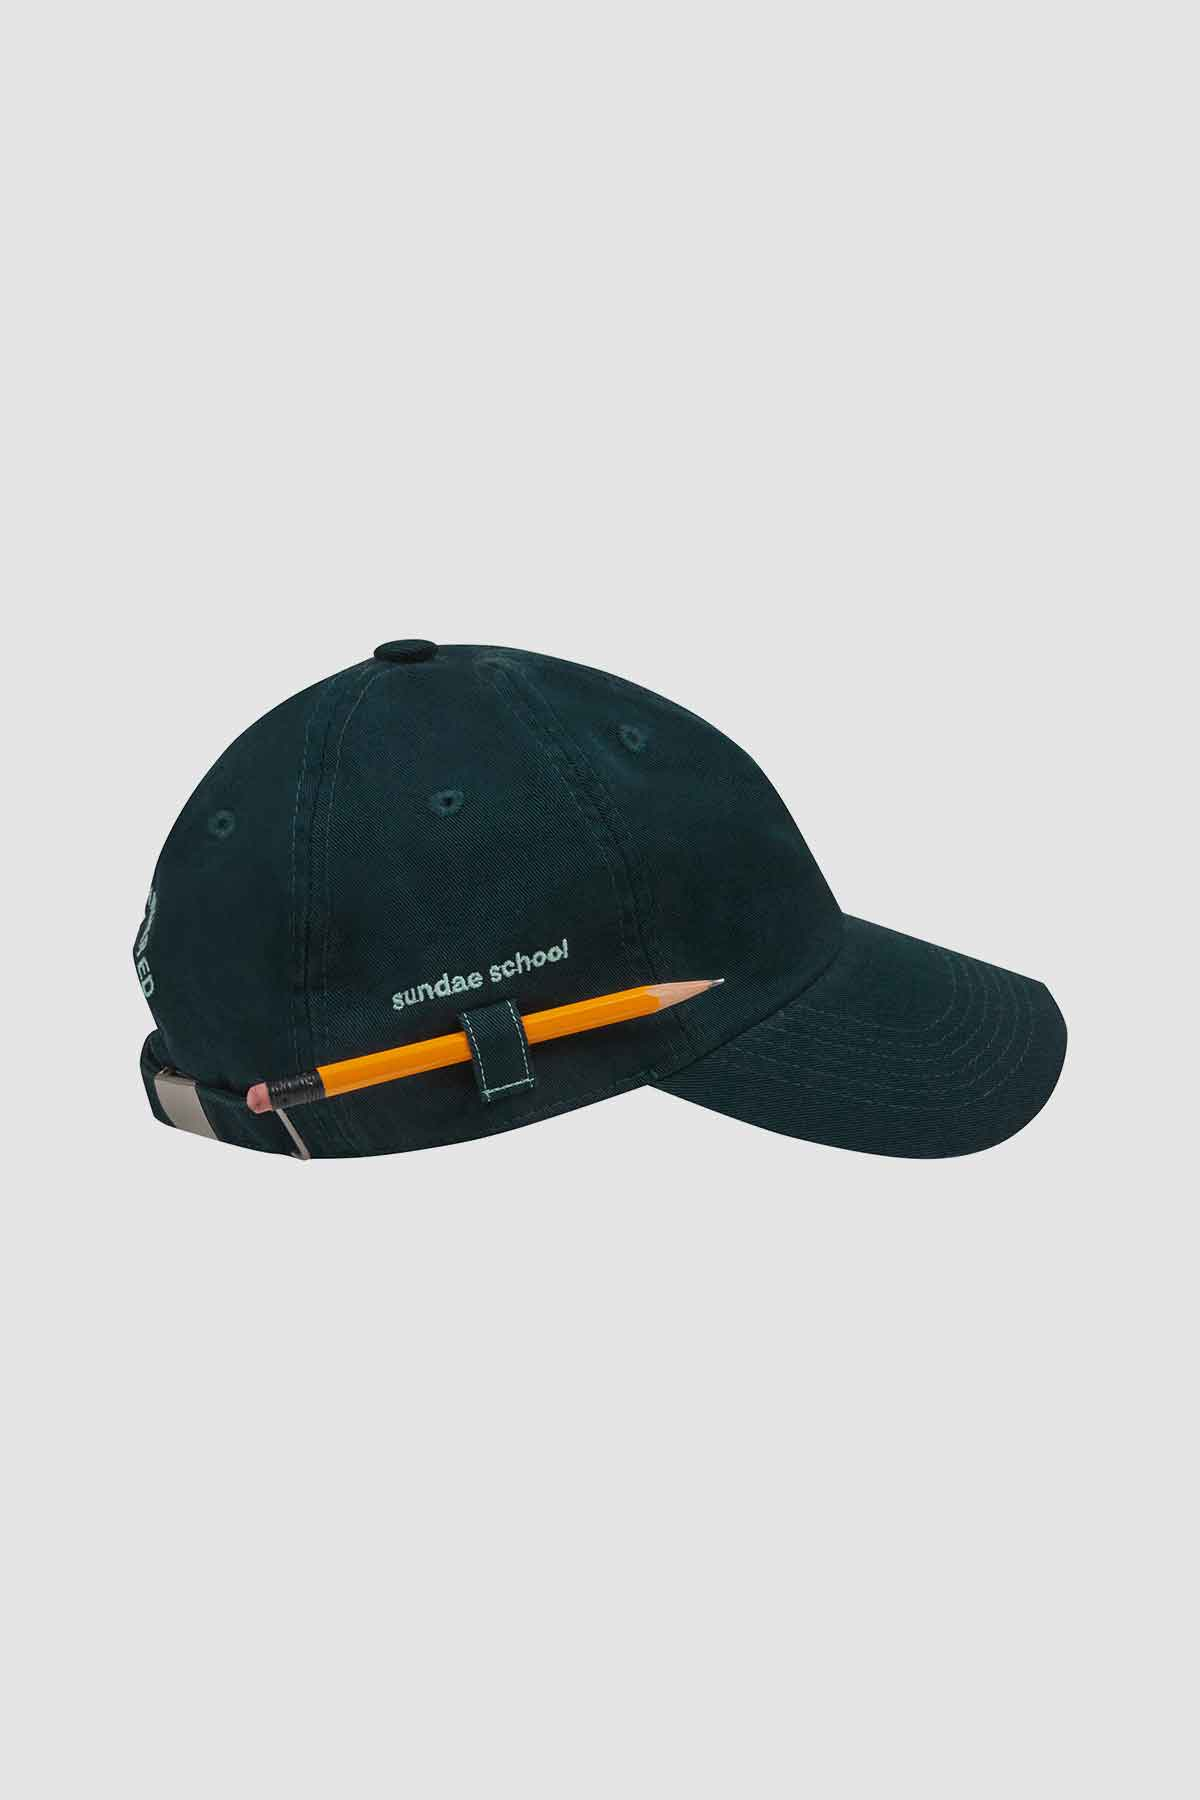 Photo of Logo Cap / Dark Green, number 3